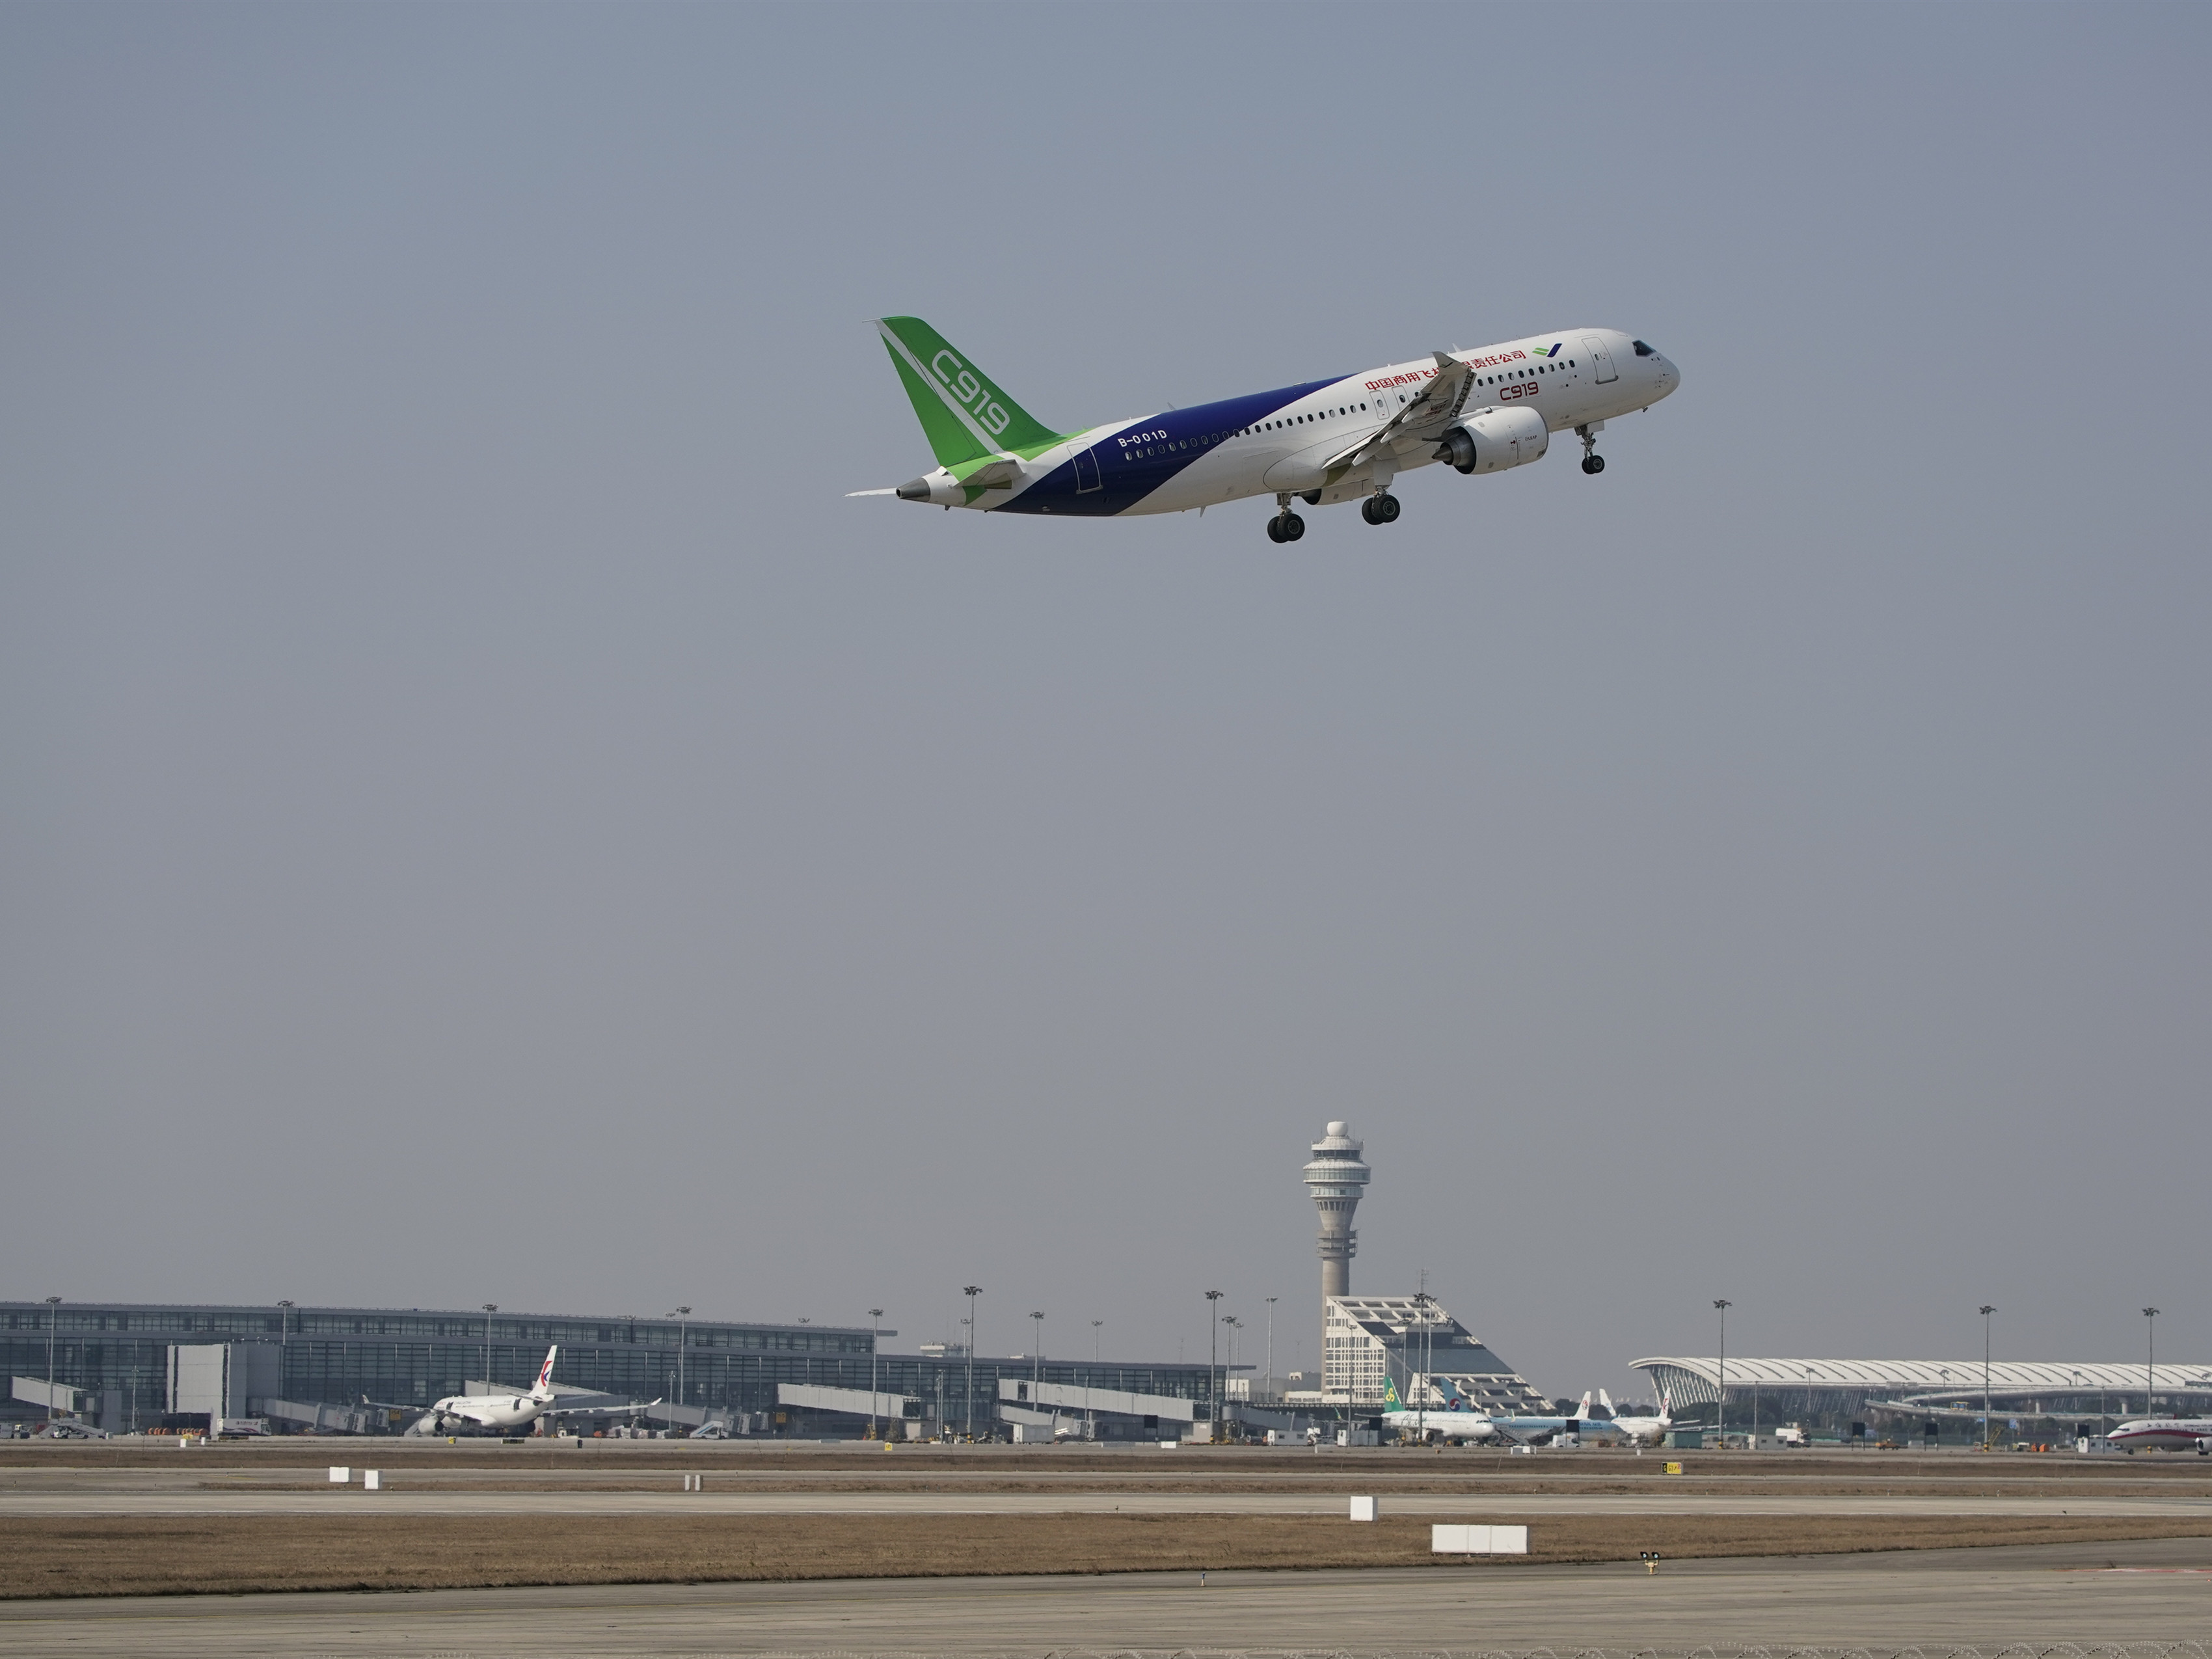 China's 3rdprototype of the C919 jet completes maiden flight